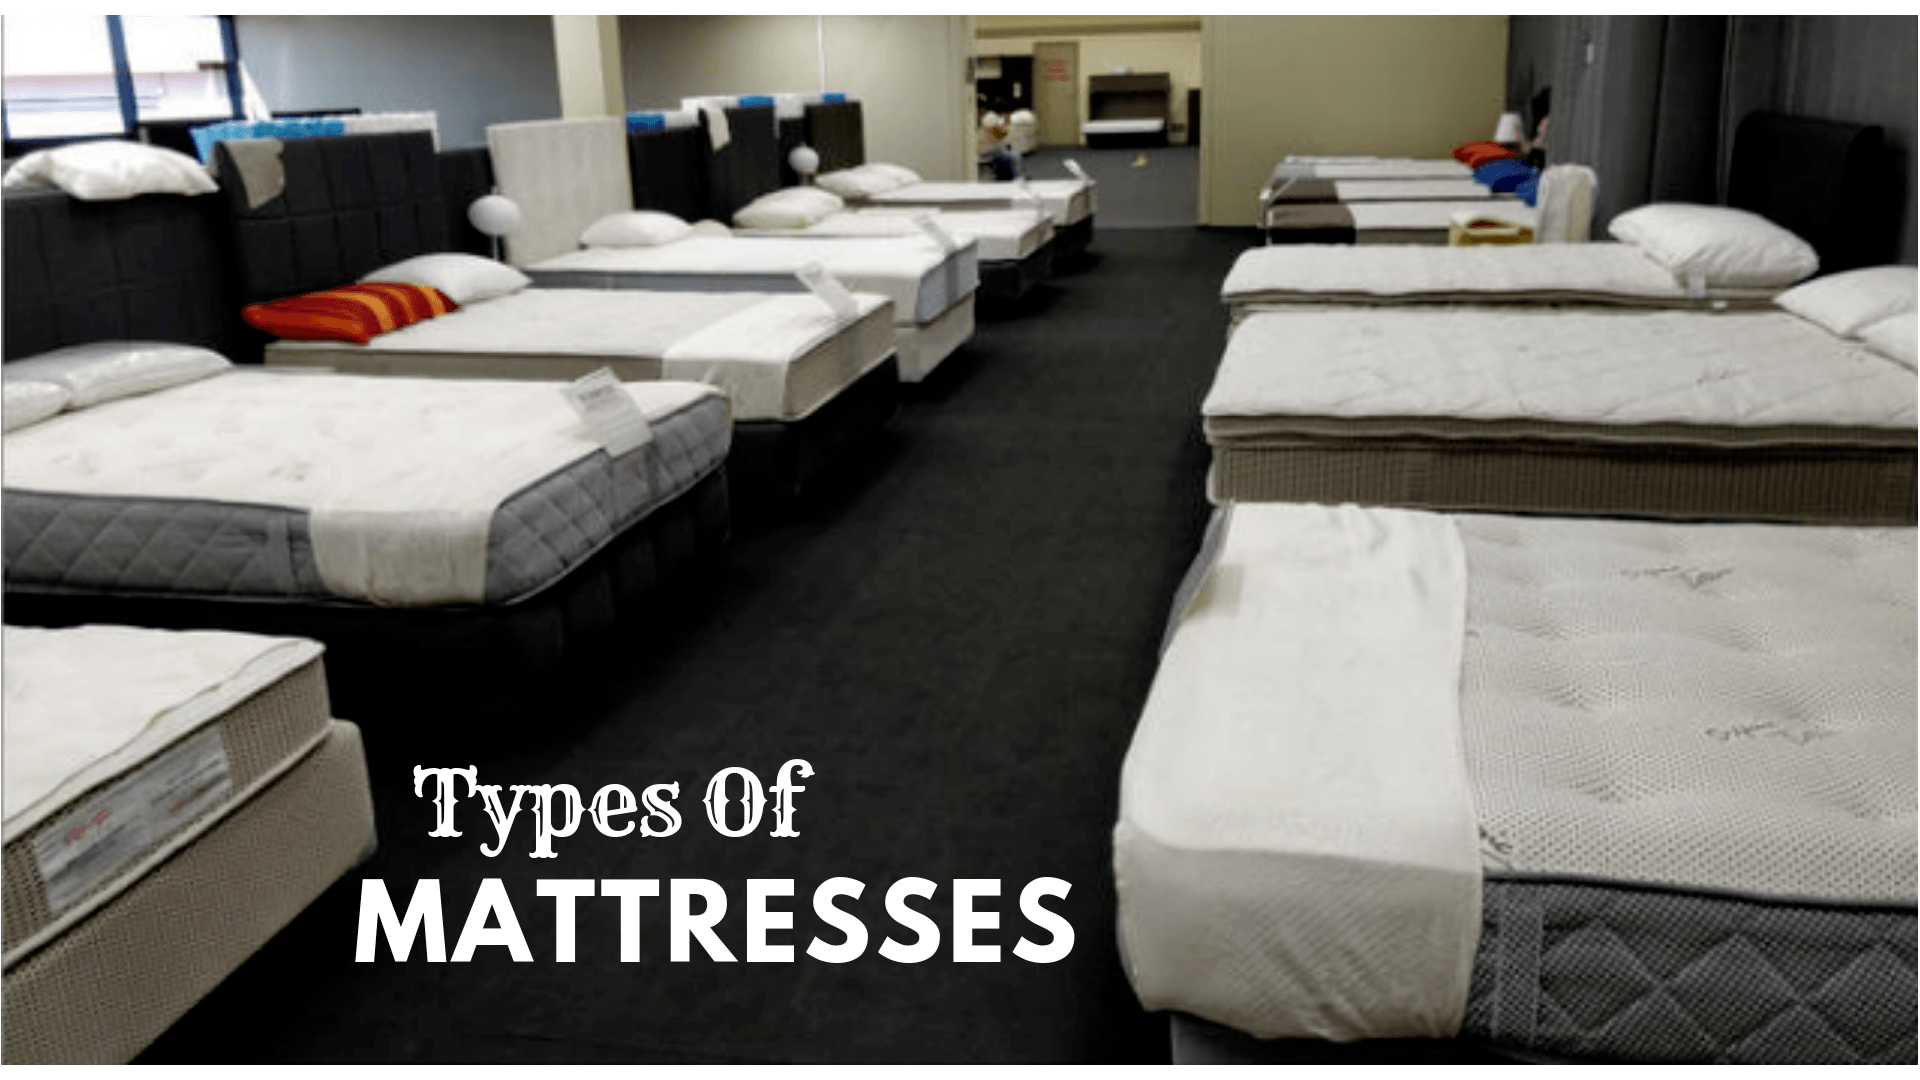 Best Bed Sheets 2020.Best Types Of Mattresses 2019 2020